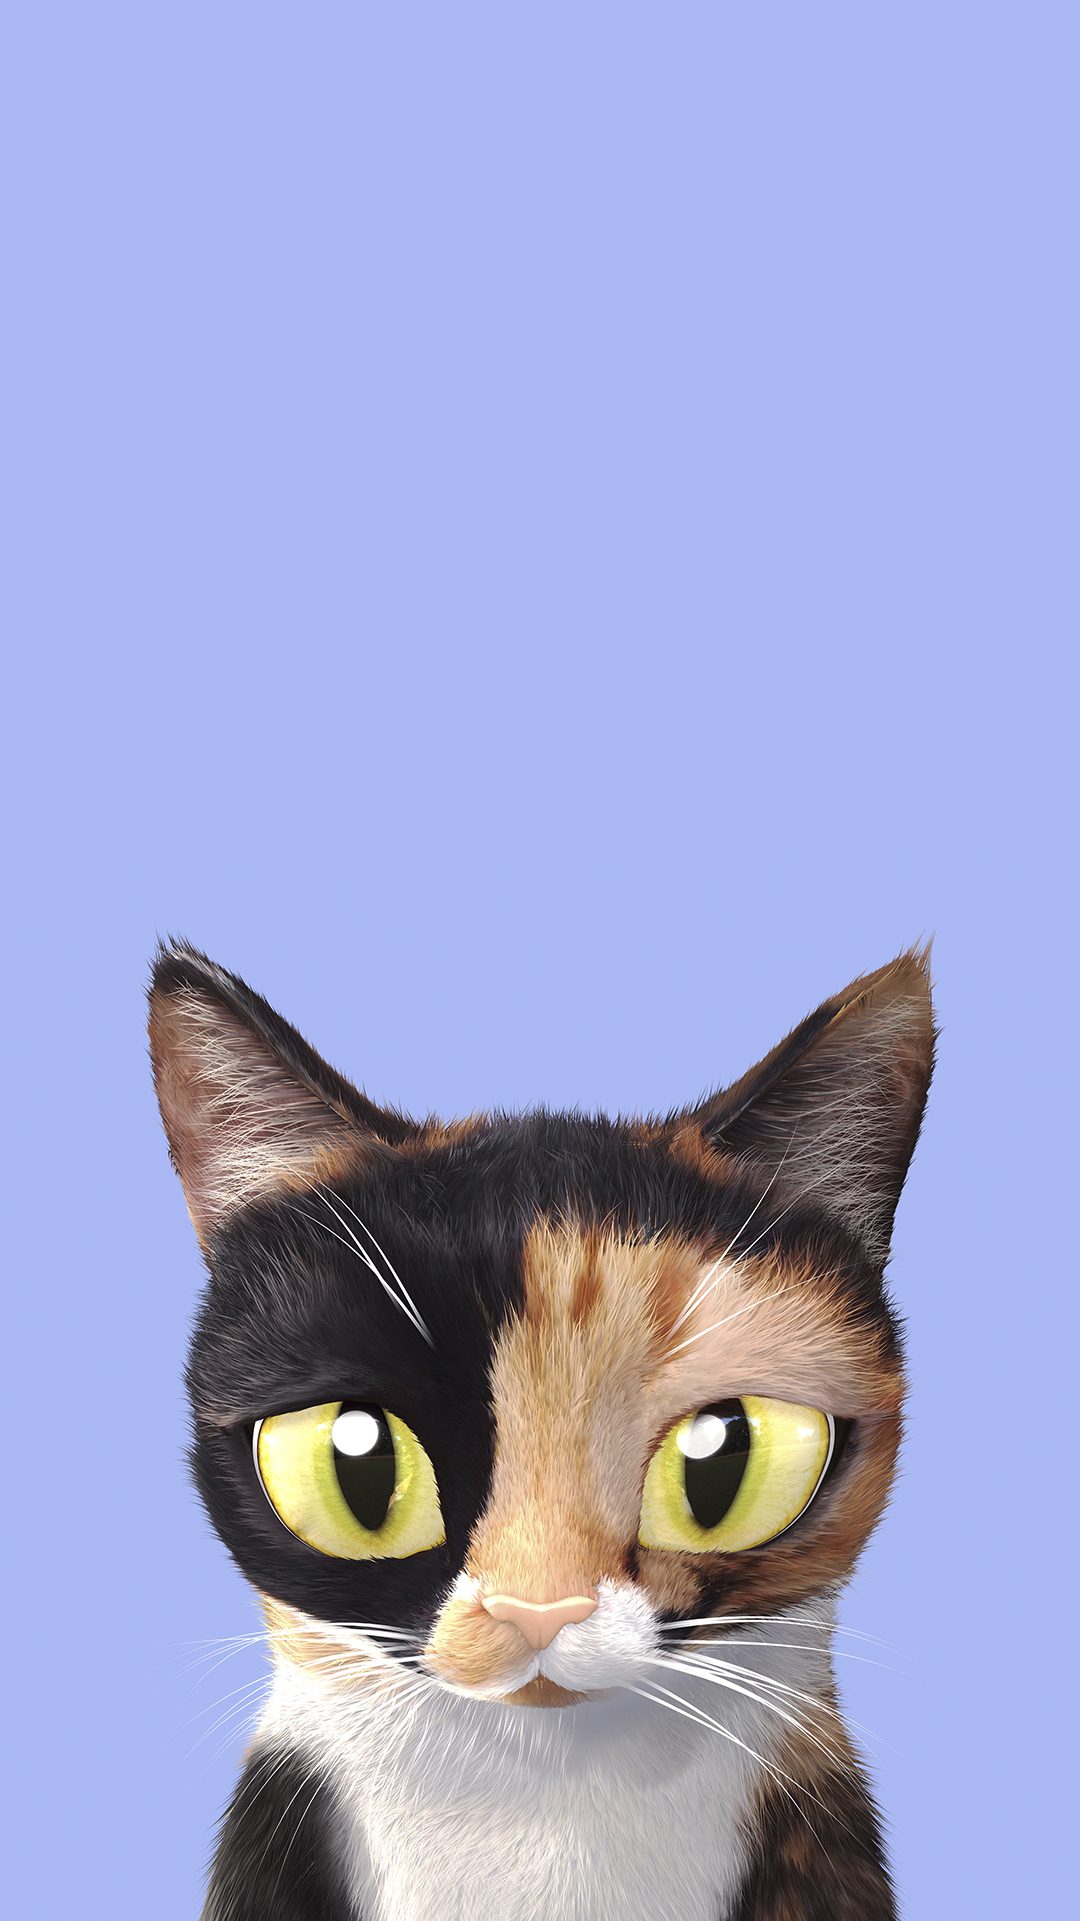 Super Cute And Bright Phone Wallpapers With Cats Youloveit Com